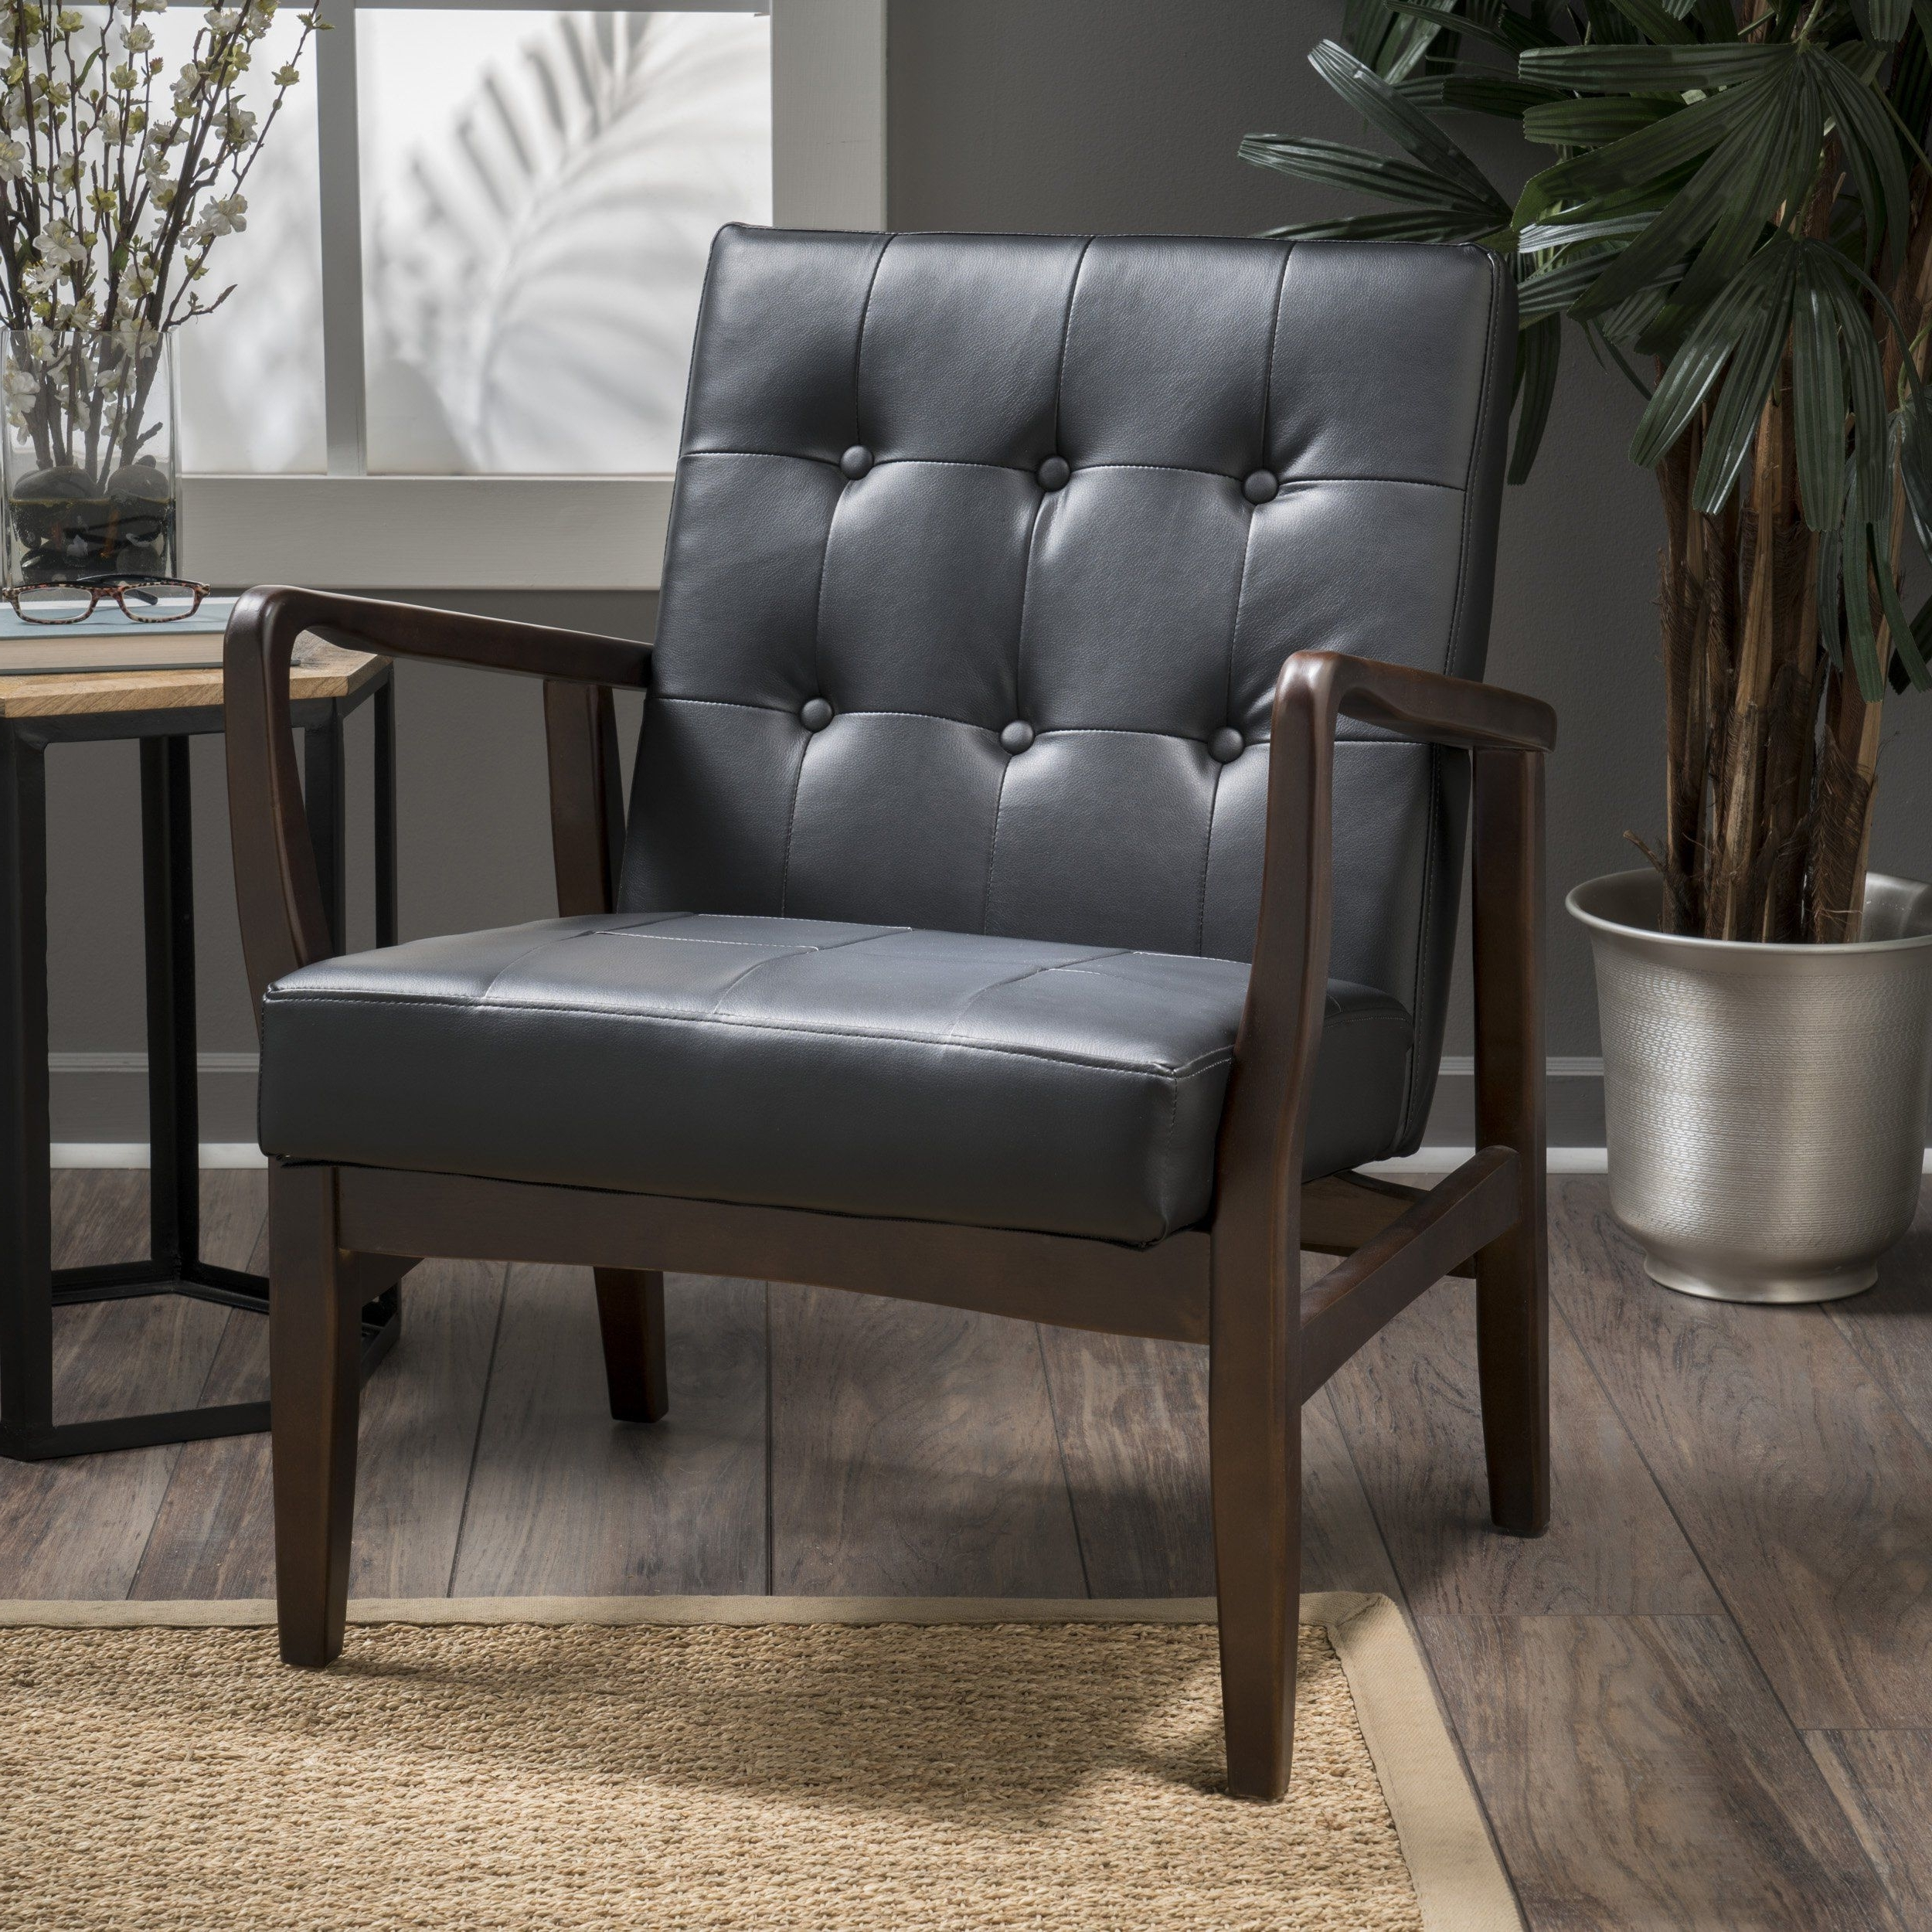 Most Recent Magnolia Home Fog Bloom Chair Inside Magnolia Home Emery Ivory Burlap Side Chairs (View 18 of 20)